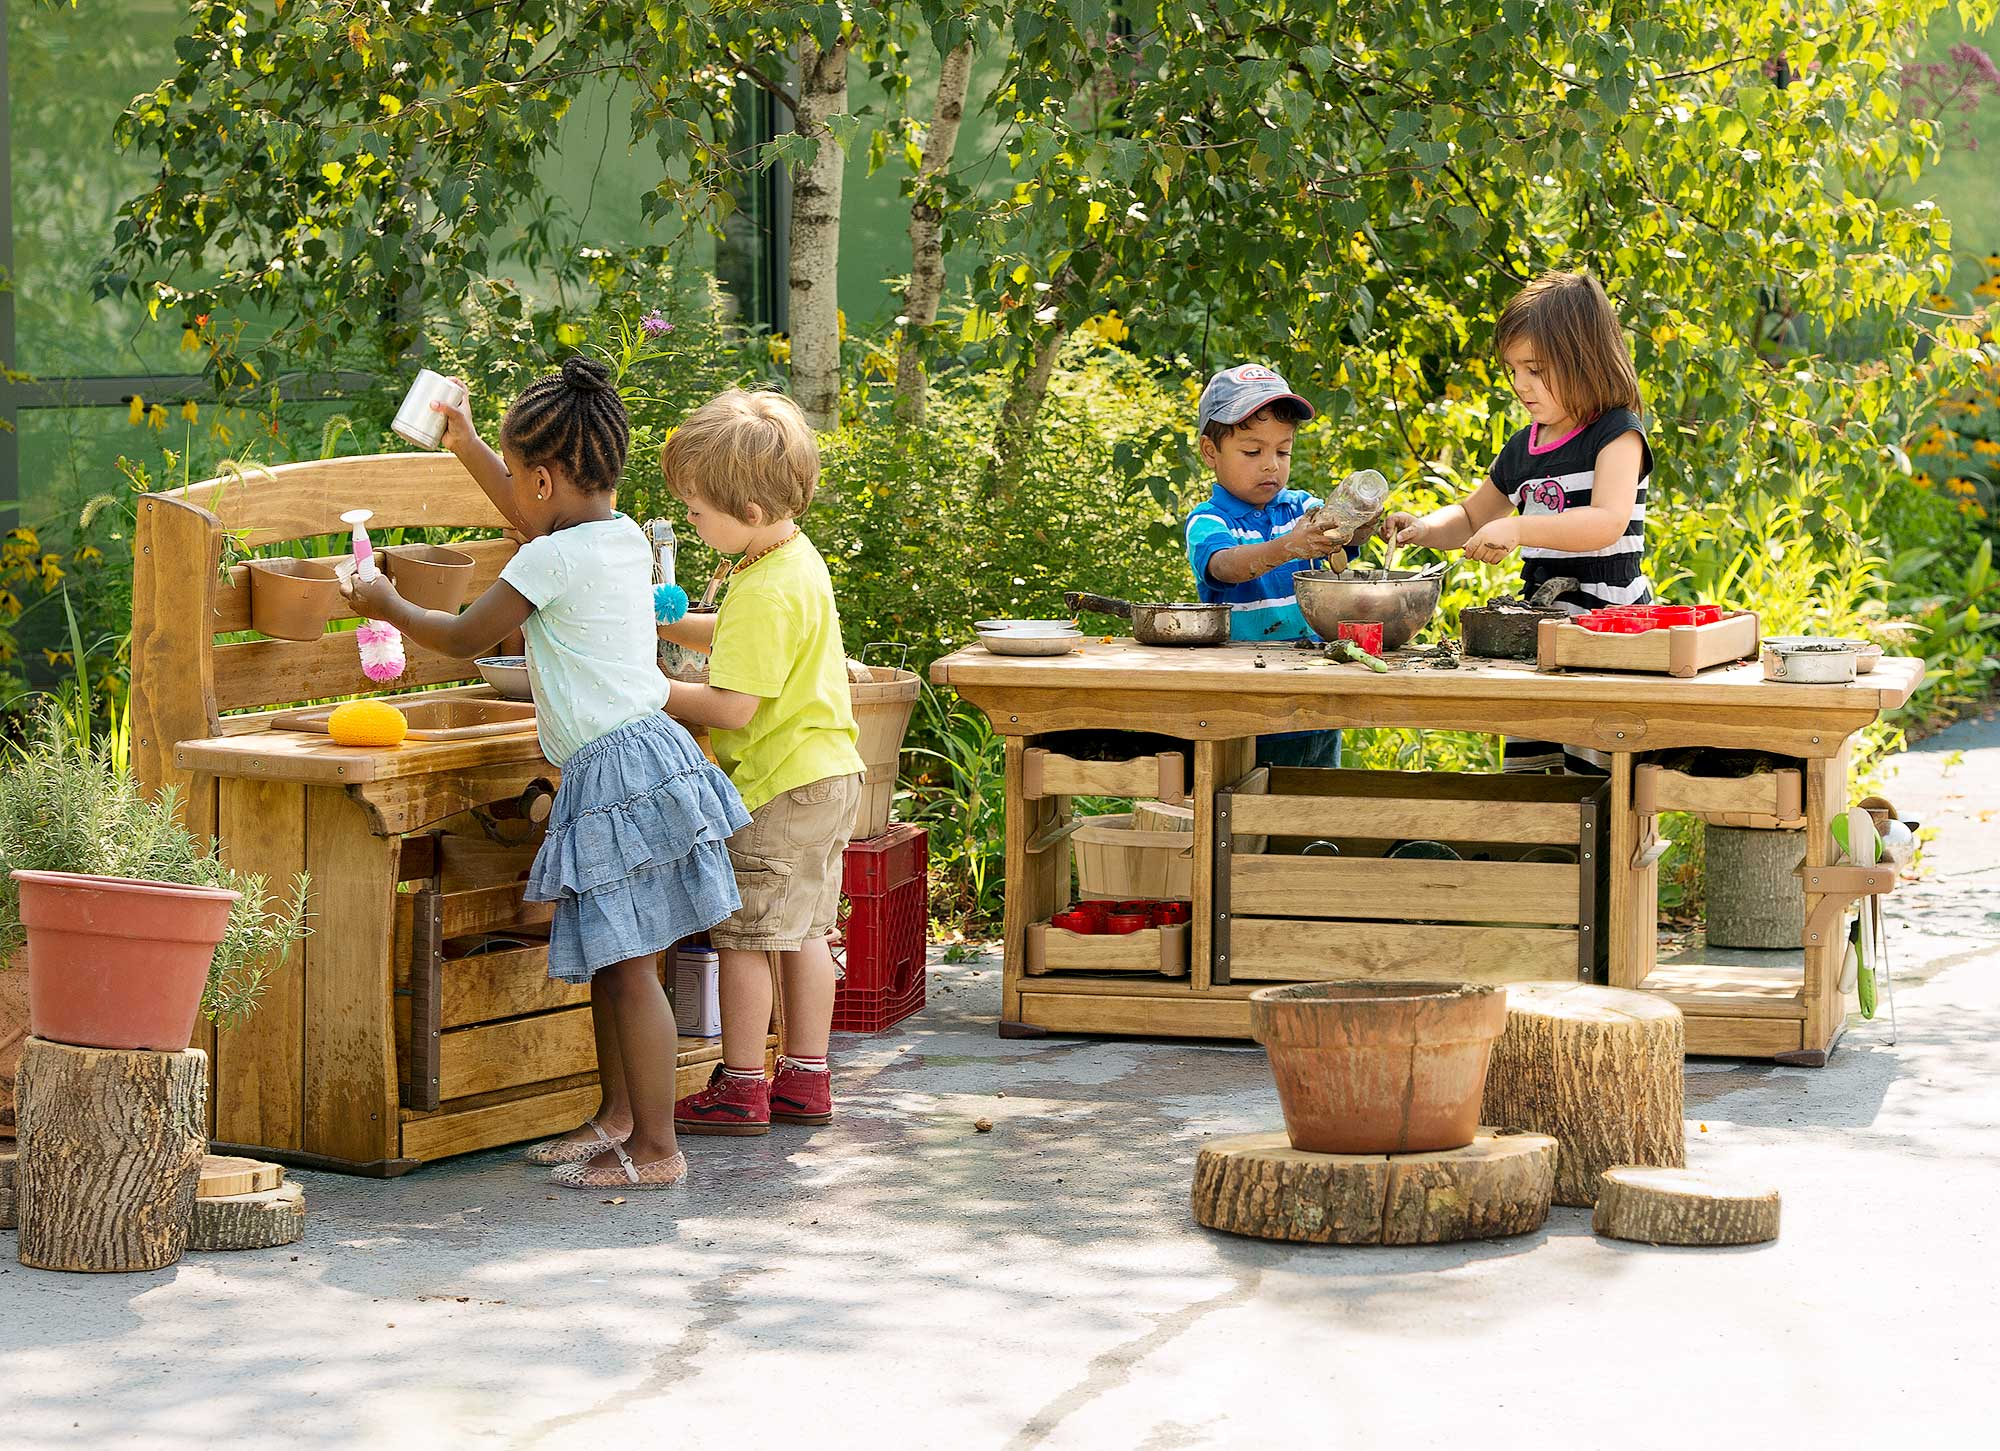 Learning with nature - Mud kitchens